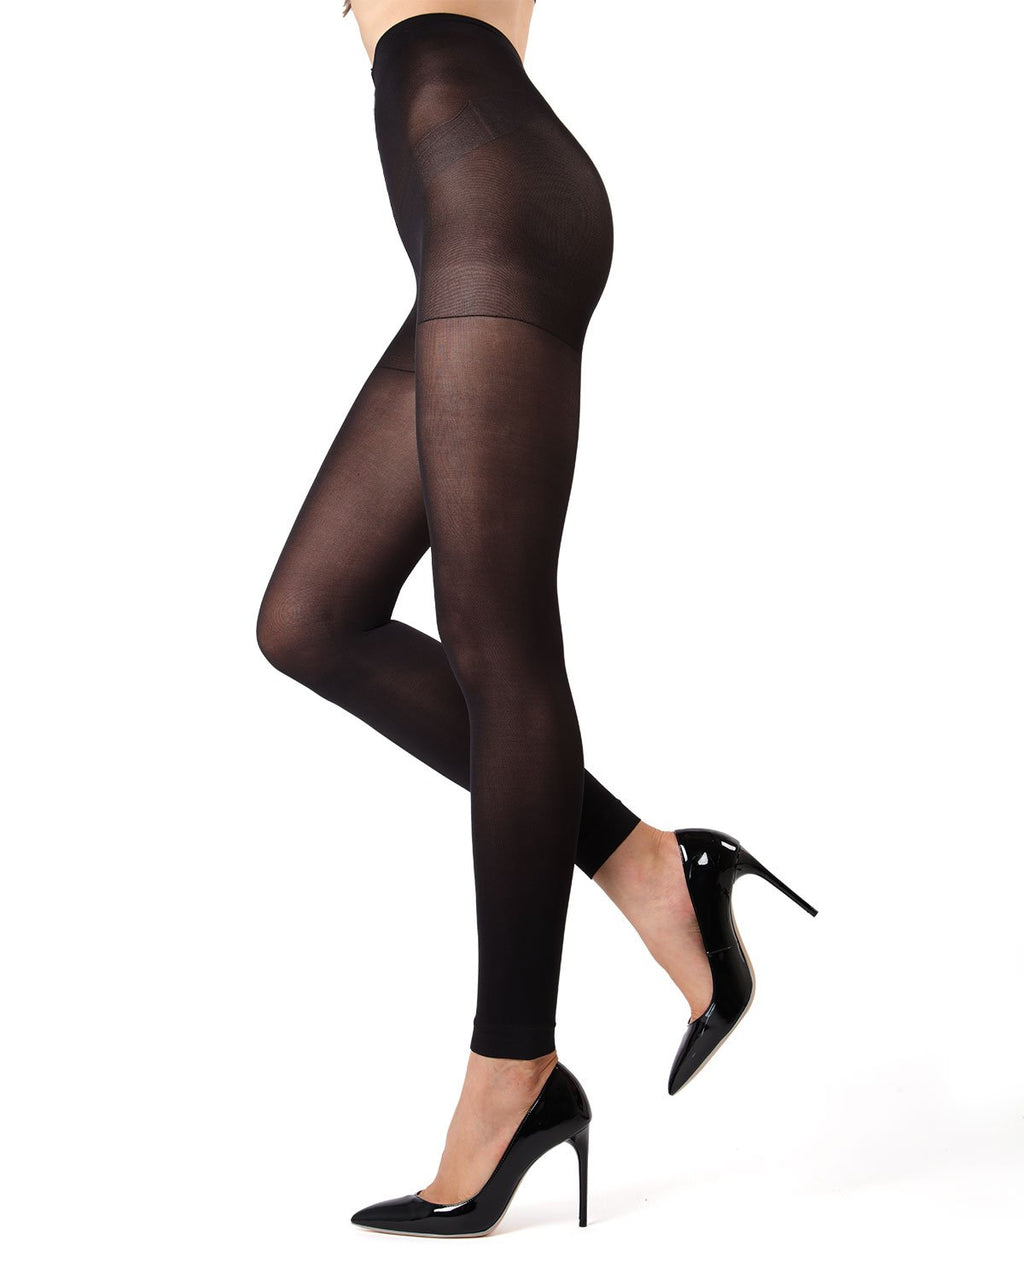 MeMoi | Black Perfectly Opaque Control Top Tights | Women's Tights - Pantyhose